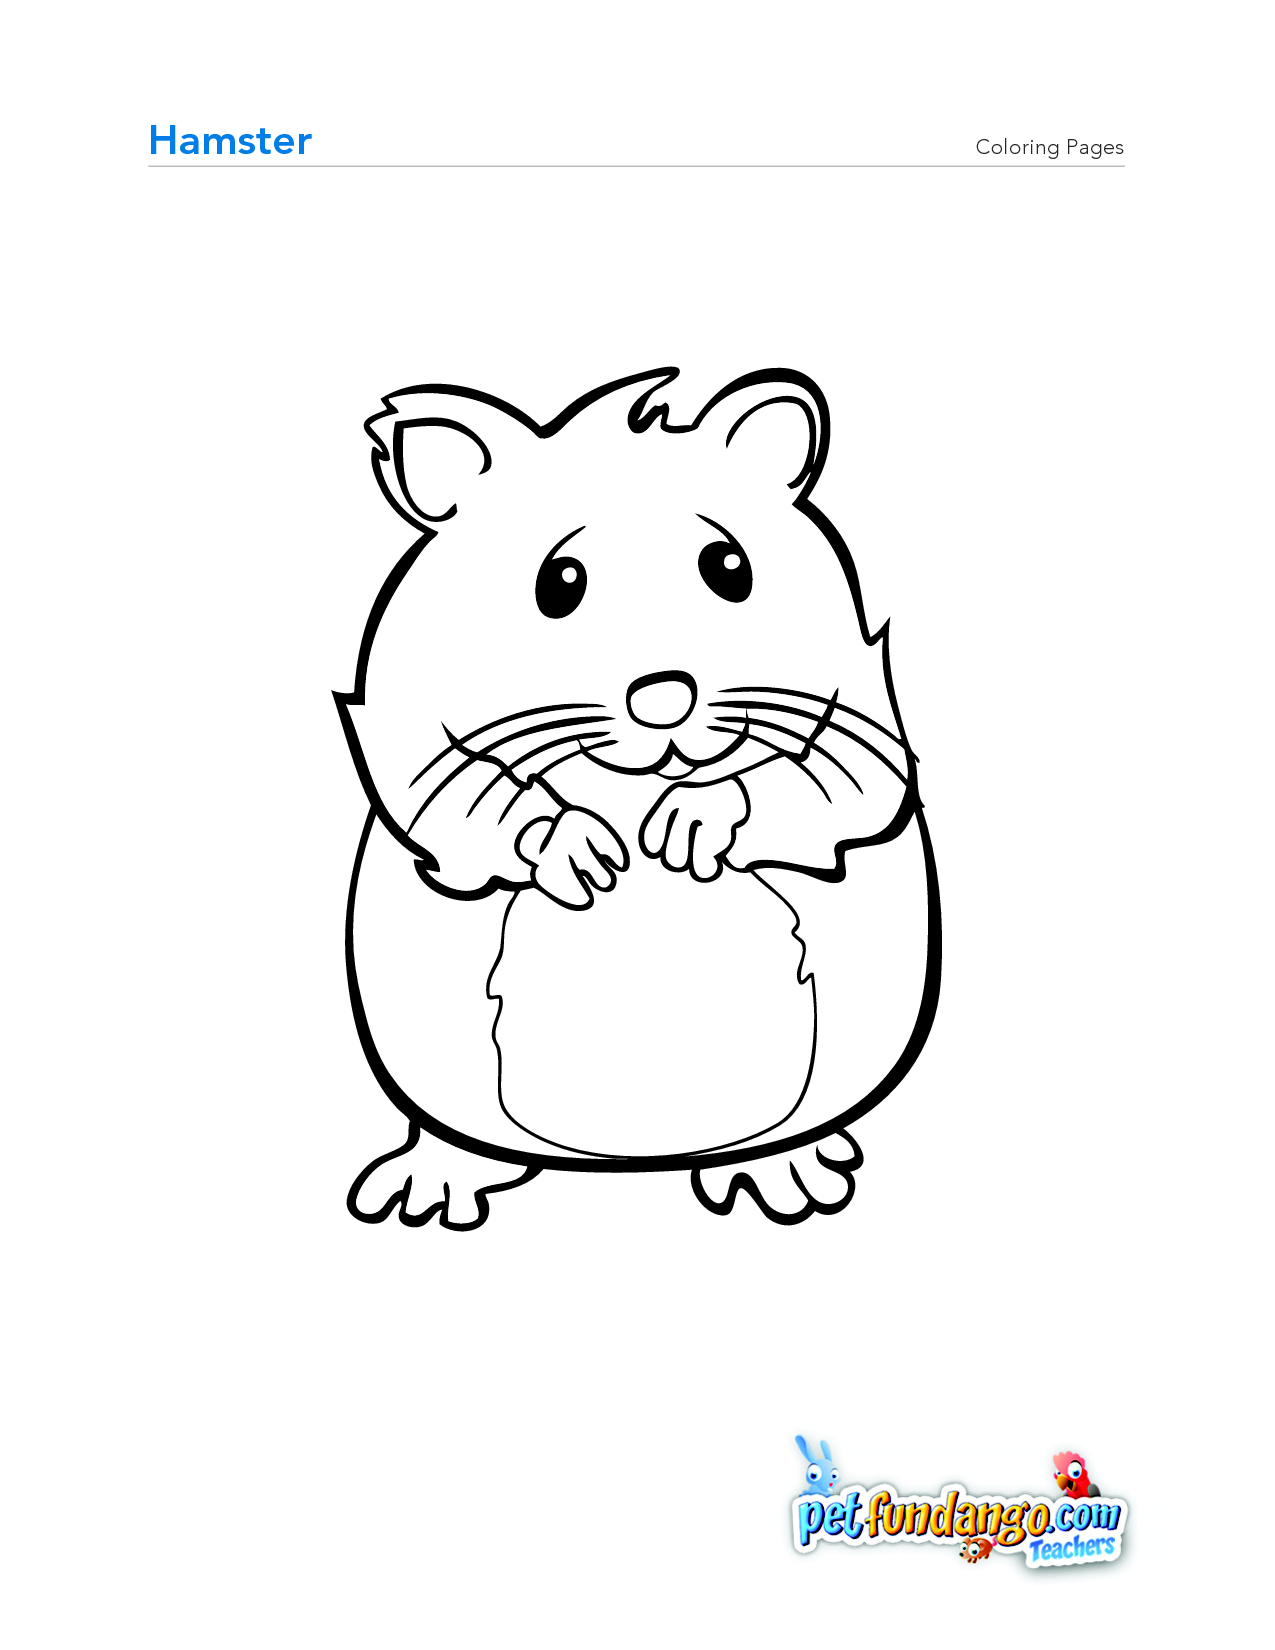 Hamster Coloring Page OSOB Cute hamsters Coloring for